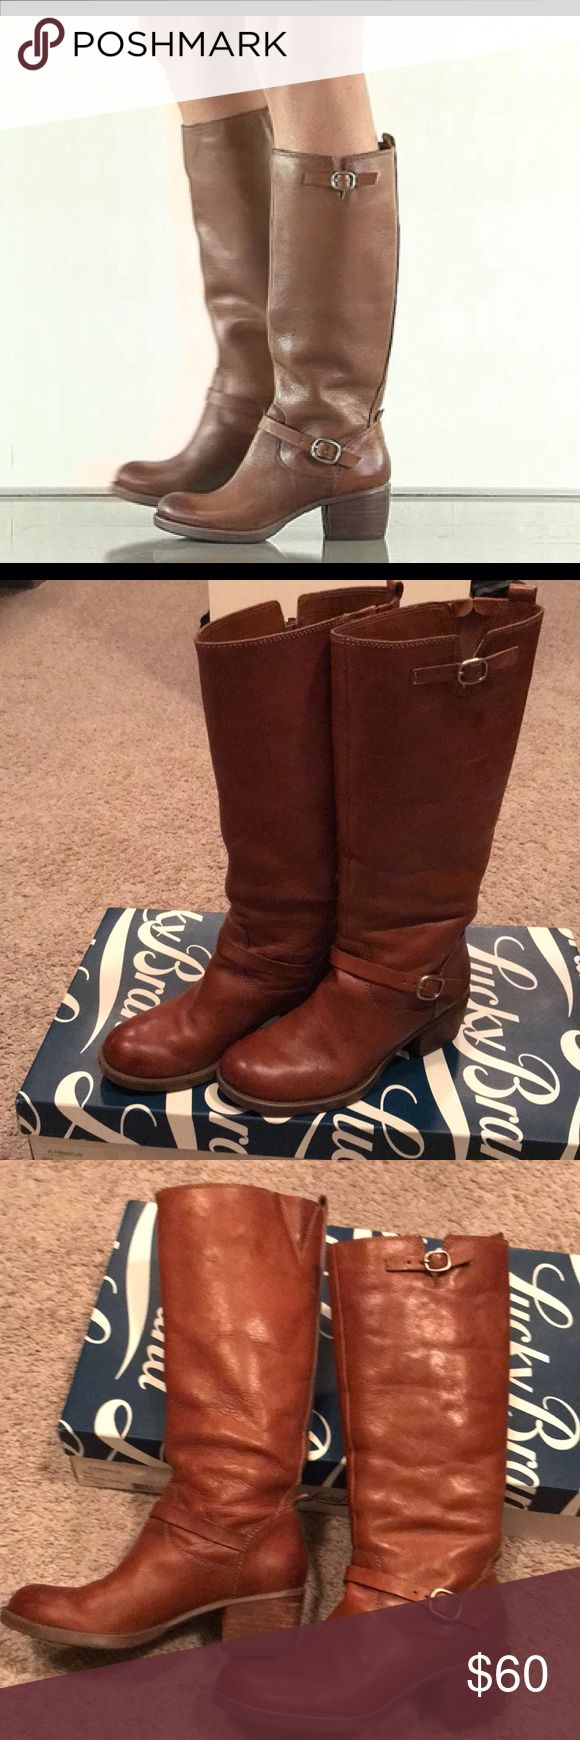 Lucky Brand Rollie Tan Leather Boots EUC! Leather is so supple and in excellent condition. Please see last two photos for heel wear and a small spot on the right boot (easily fixable with some leather shoe polish). Shaft height is about 12 inches. True size 8. Comfy 2 inch heel. Pull on style. Two small buckle details on each boot. I wear regular ankle style boots. PRICE FIRM Lucky Brand Shoes Winter & Rain Boots